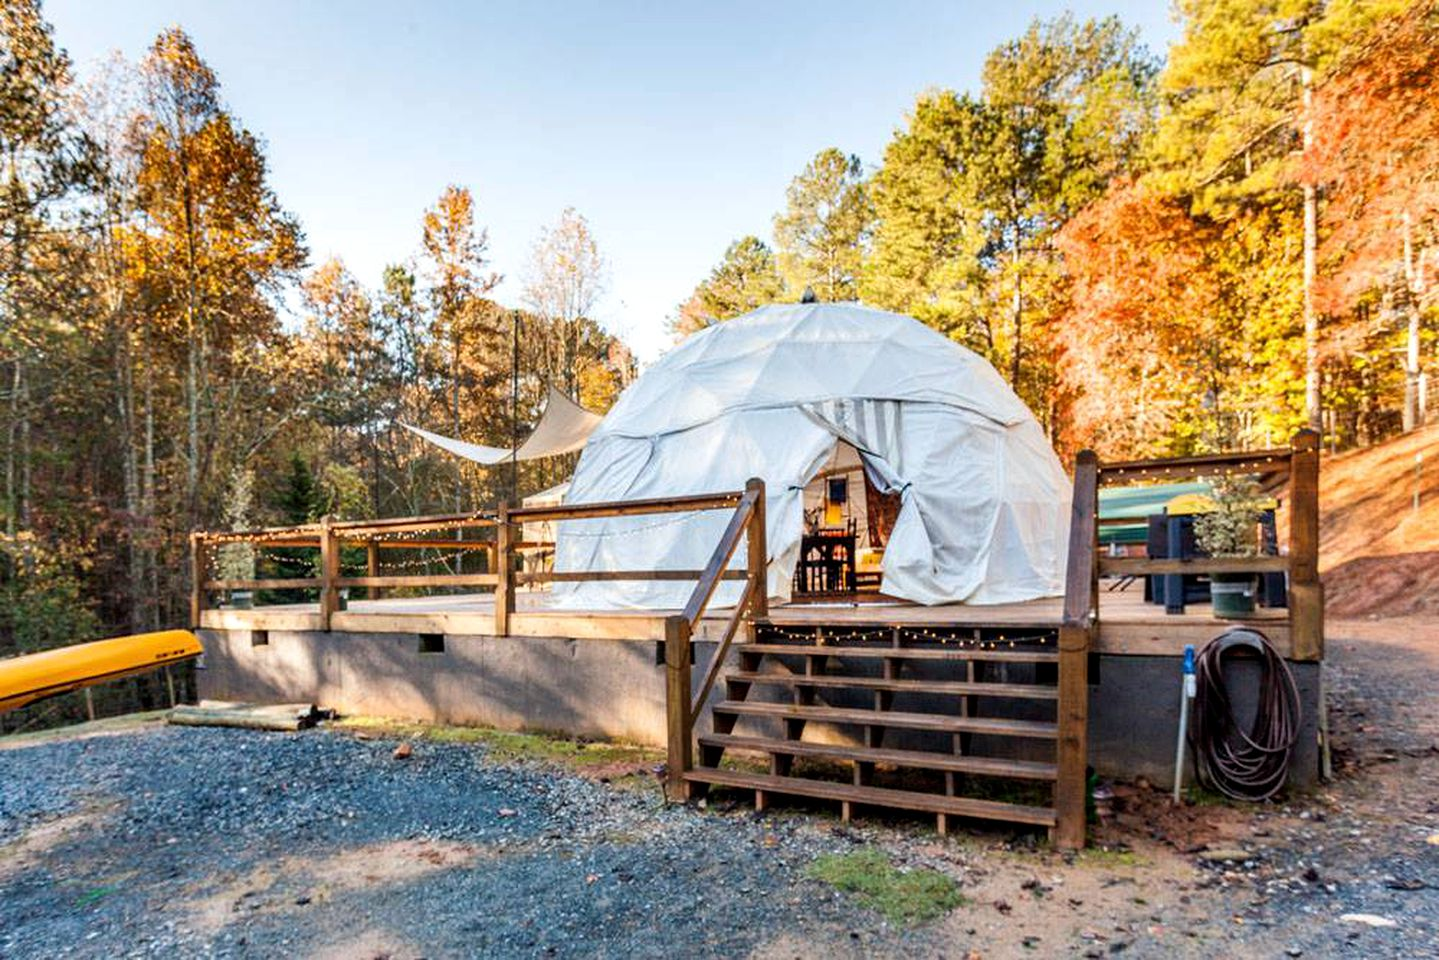 Dome tents in Ellijay, Georgia, United States